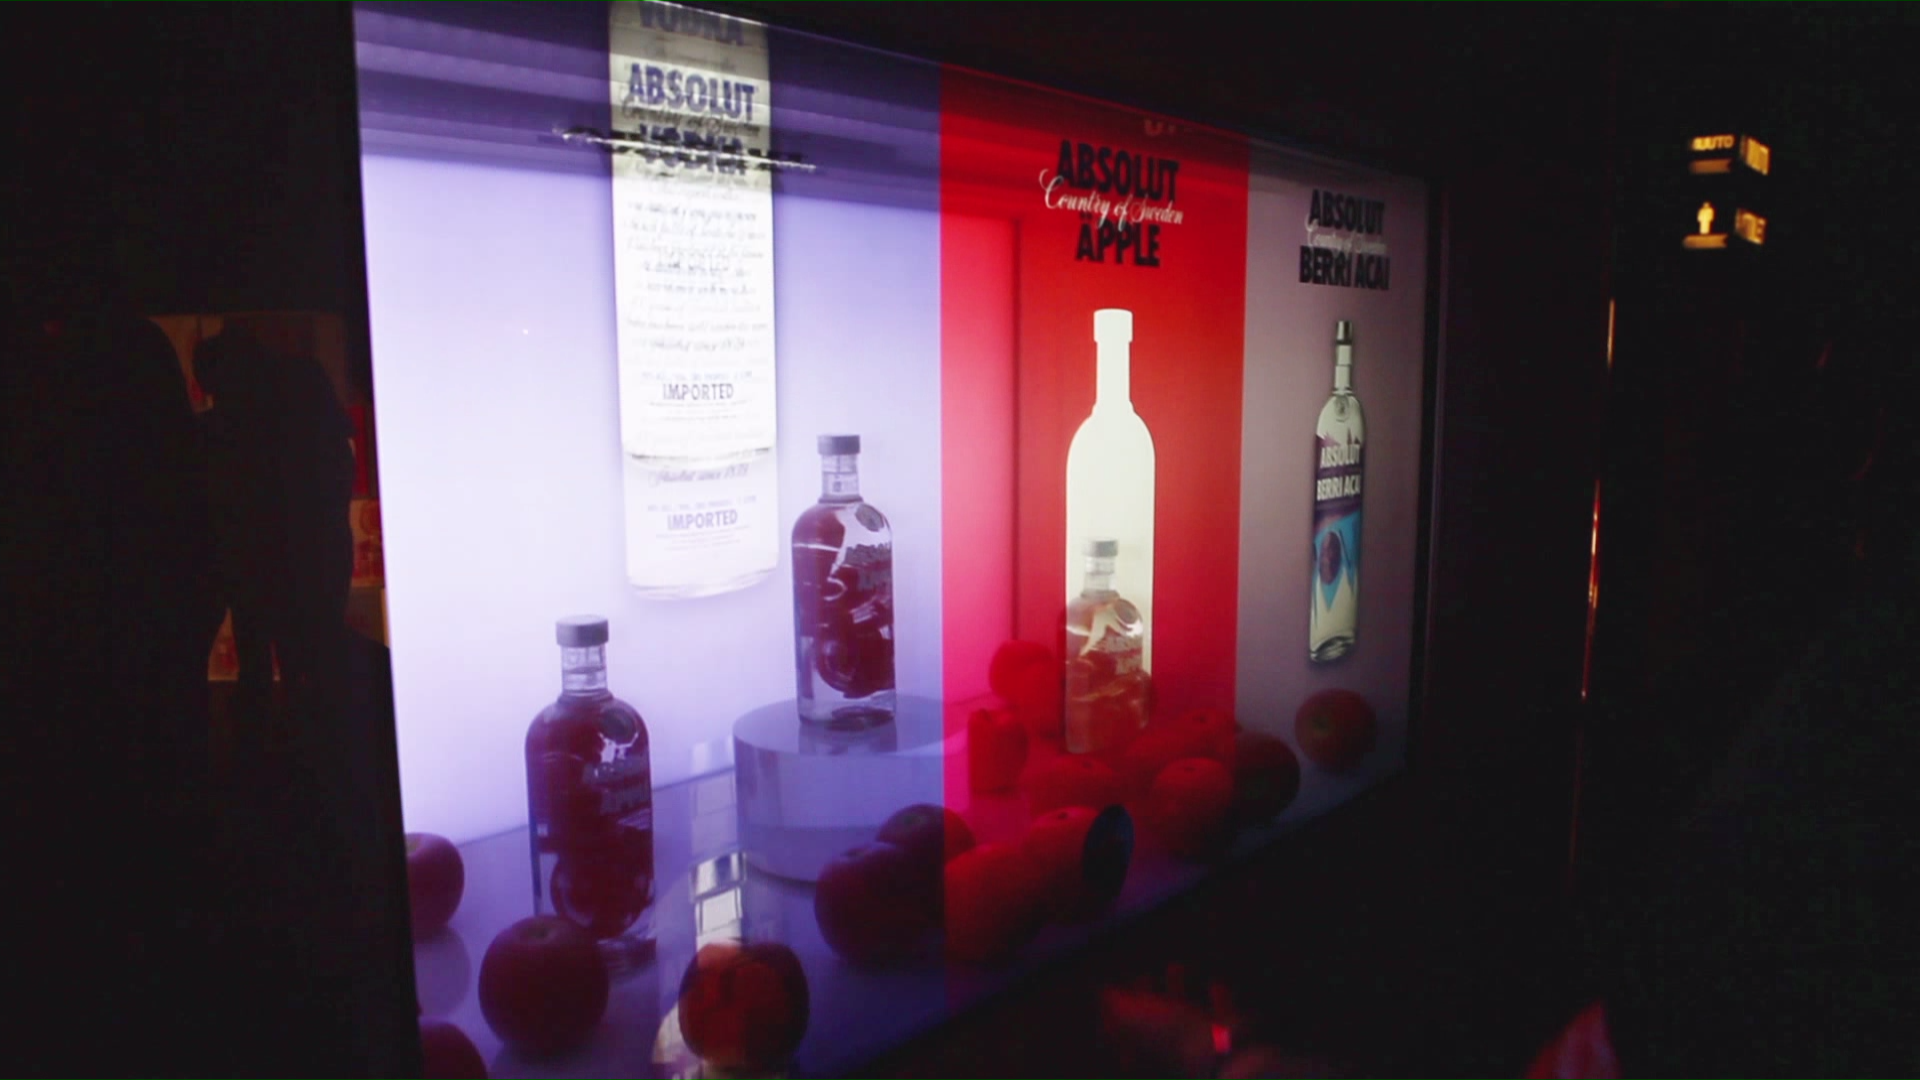 Absolut_Apple_2.png